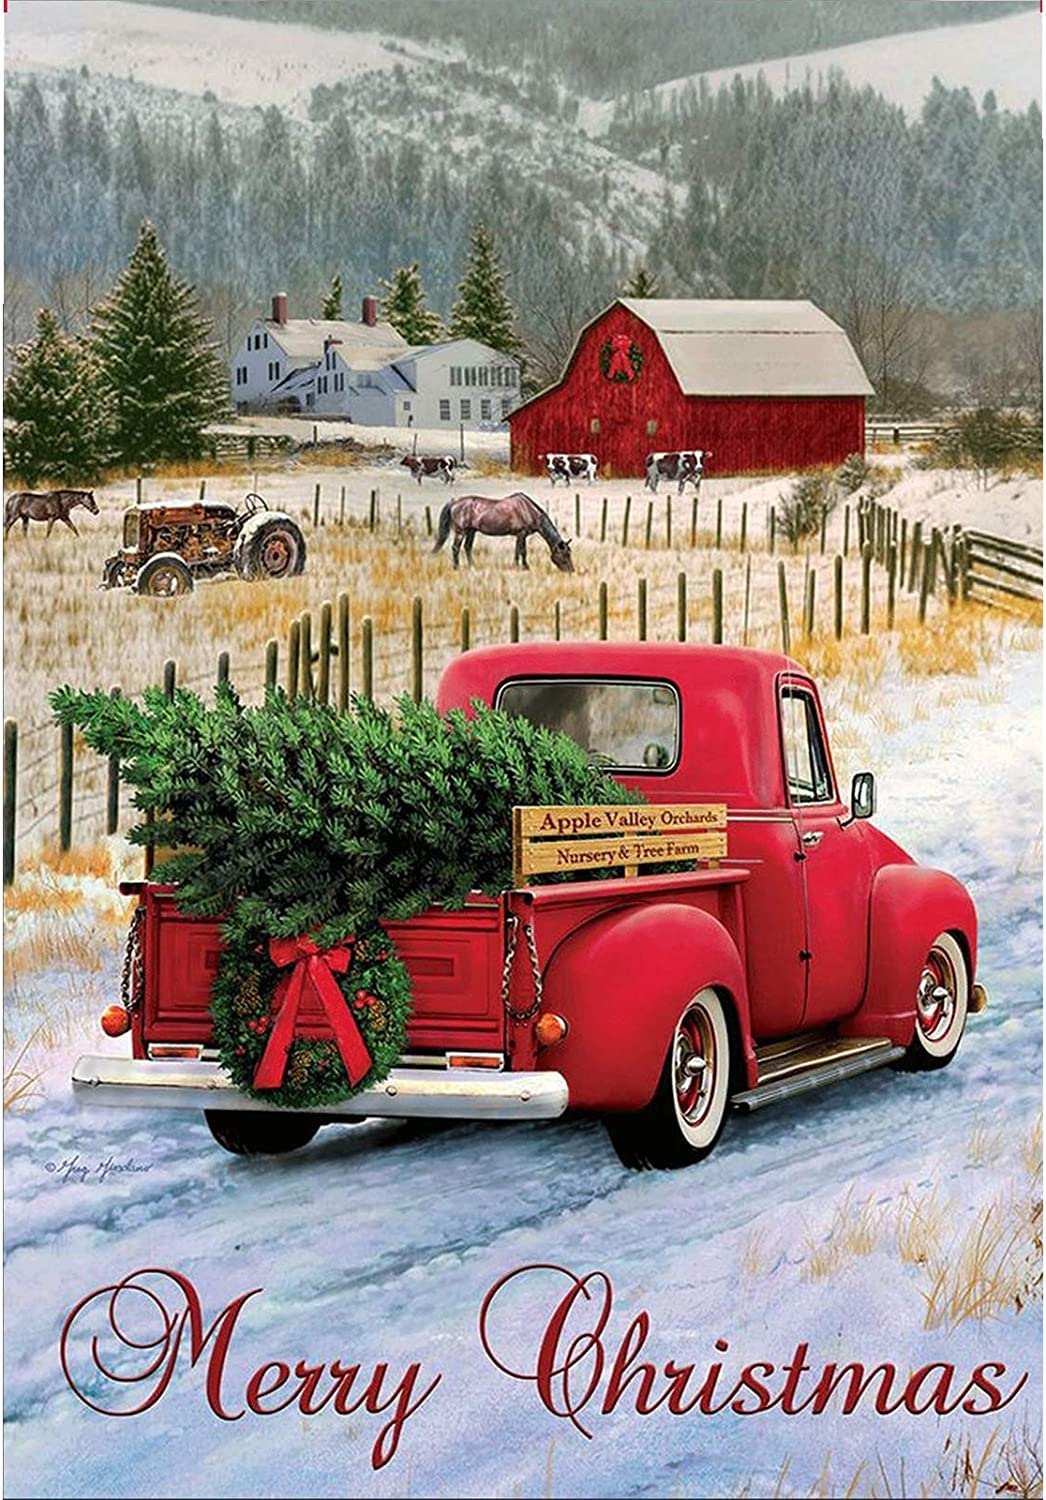 Merry Christmas Garden Flag Red Truck Xmas Pine Tree 12.5 x 18 Inch Double Sided Xmas Pickup Winter House Farmhouse Rustic Quote Burlap Garden Yard Décor Banner Outside Decorative Vintage Garden Flags